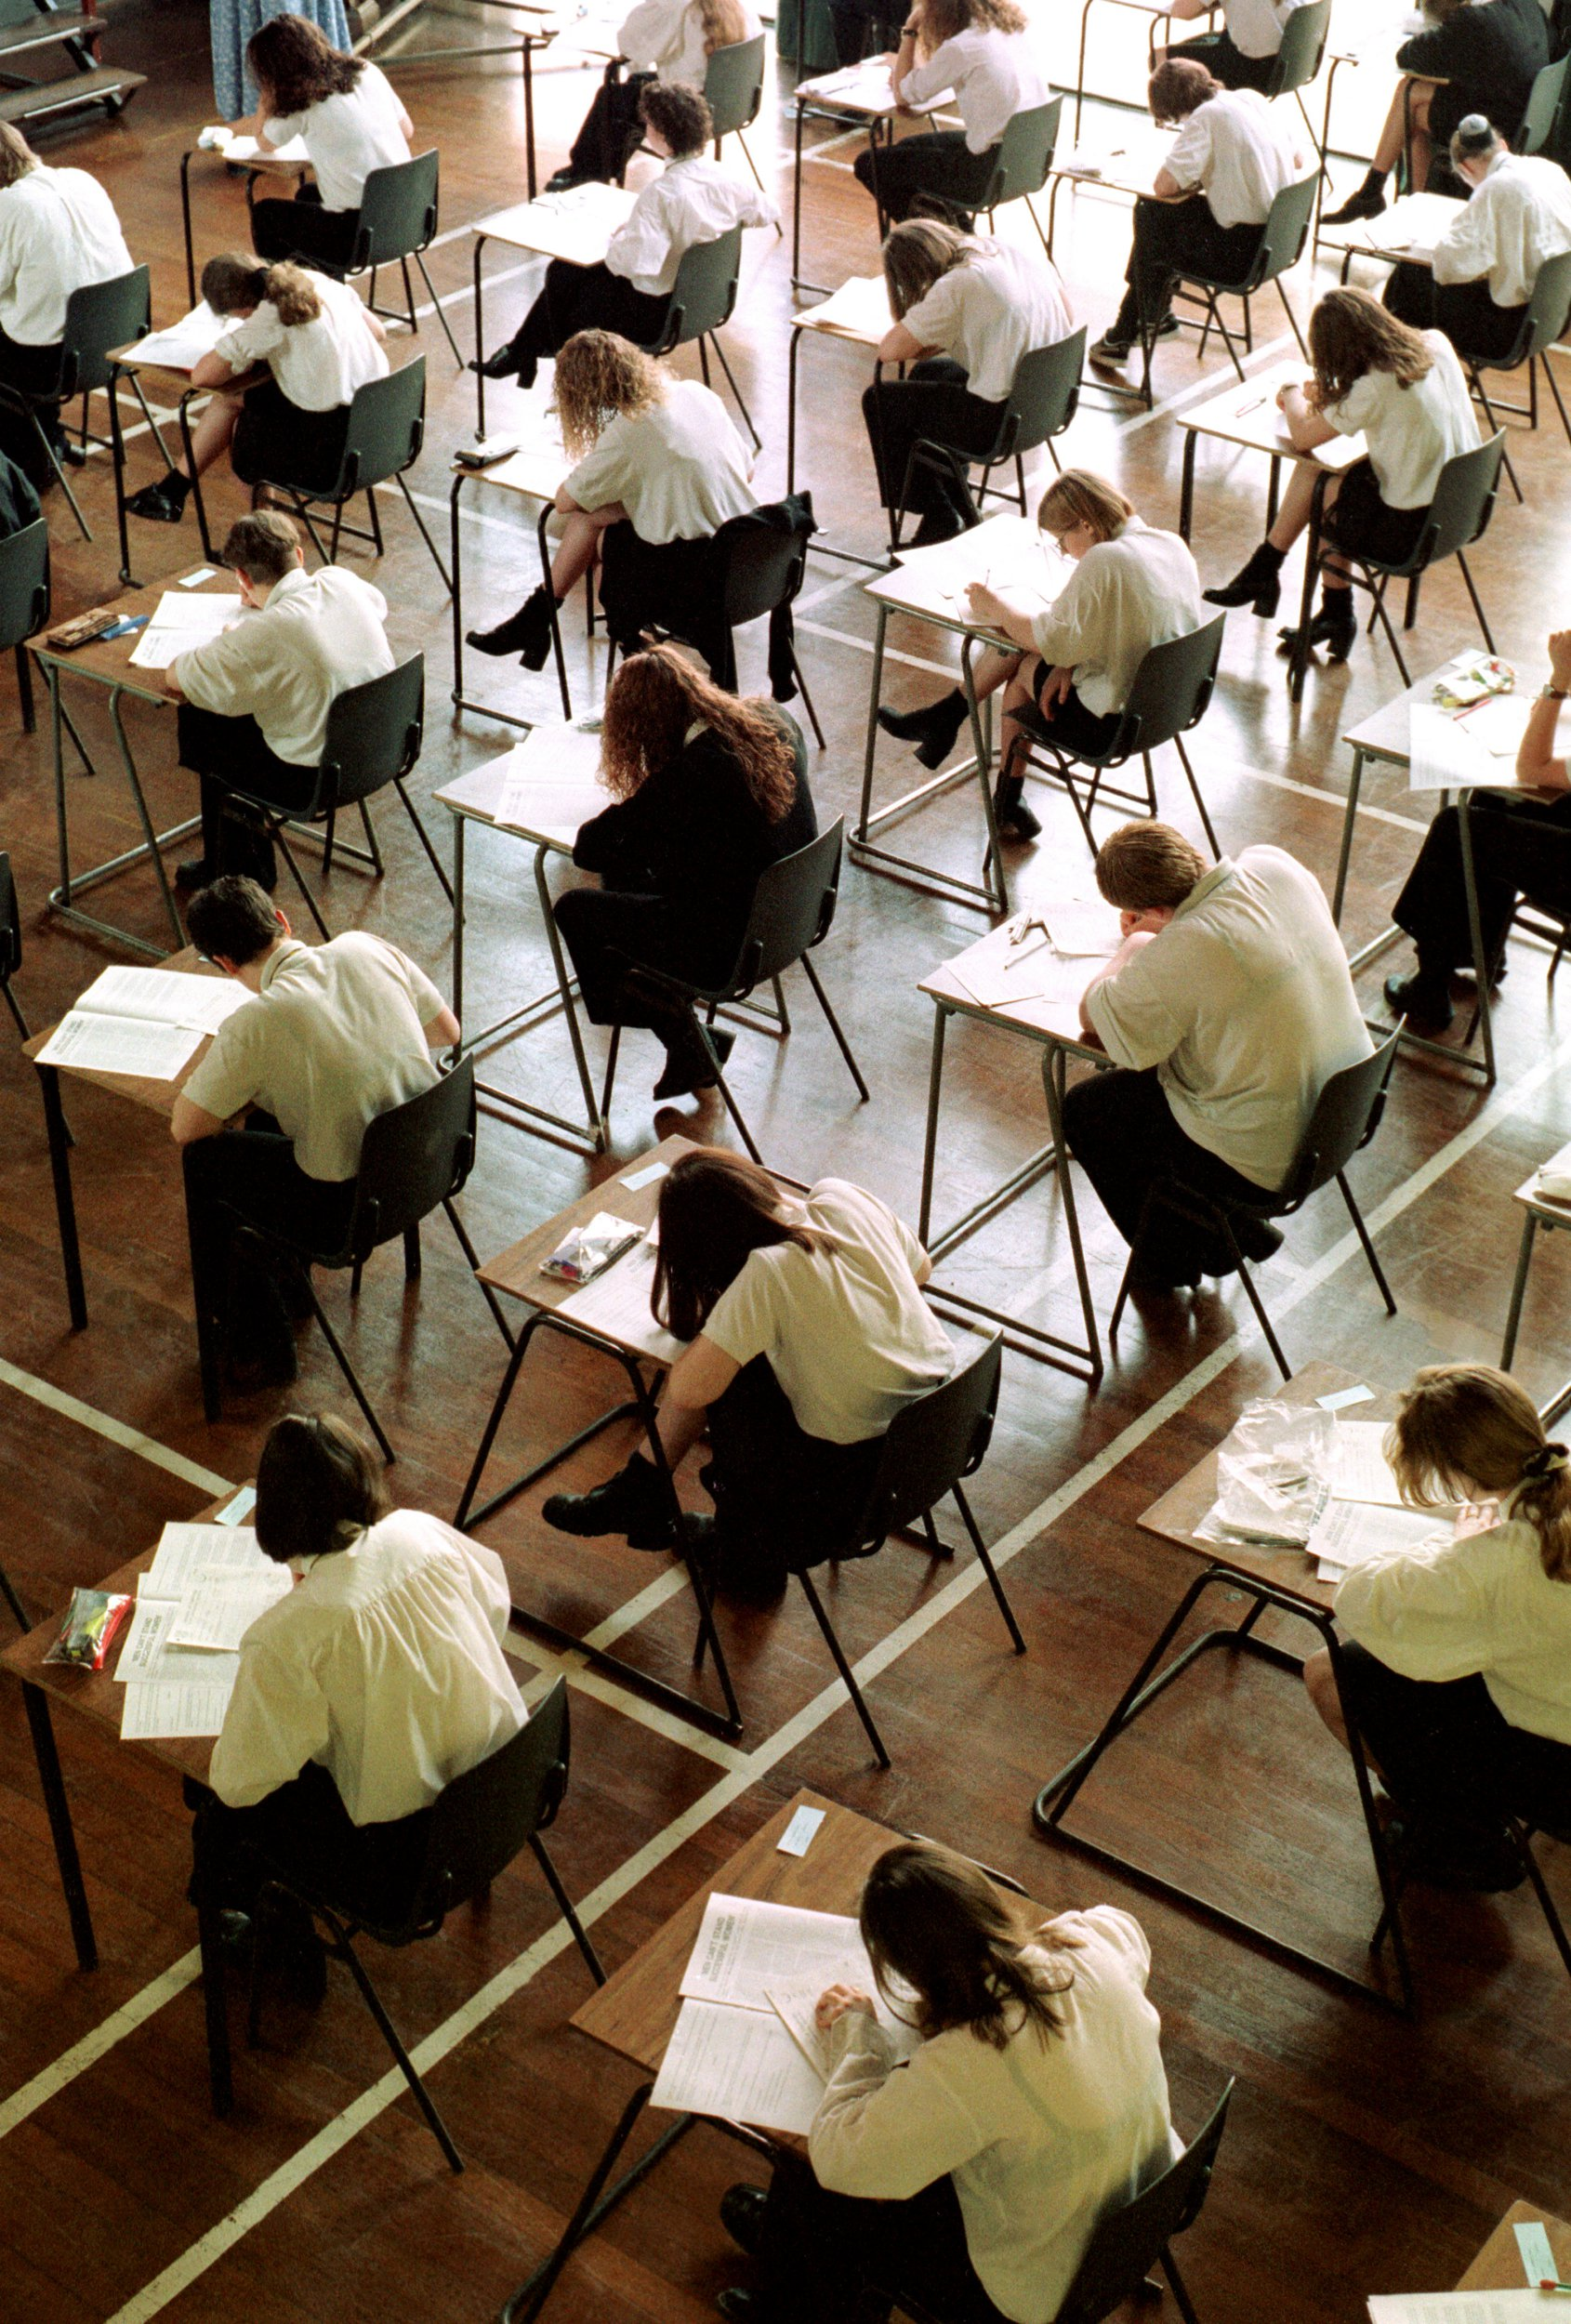 School students from year 11 at Northgate High School sit and take there GCSE English exams while working at temporary desks in the main hall of the school in Dereham, Norfolk, U.K., in June, 1996. (Photo by Bryn Colton/Getty Images)